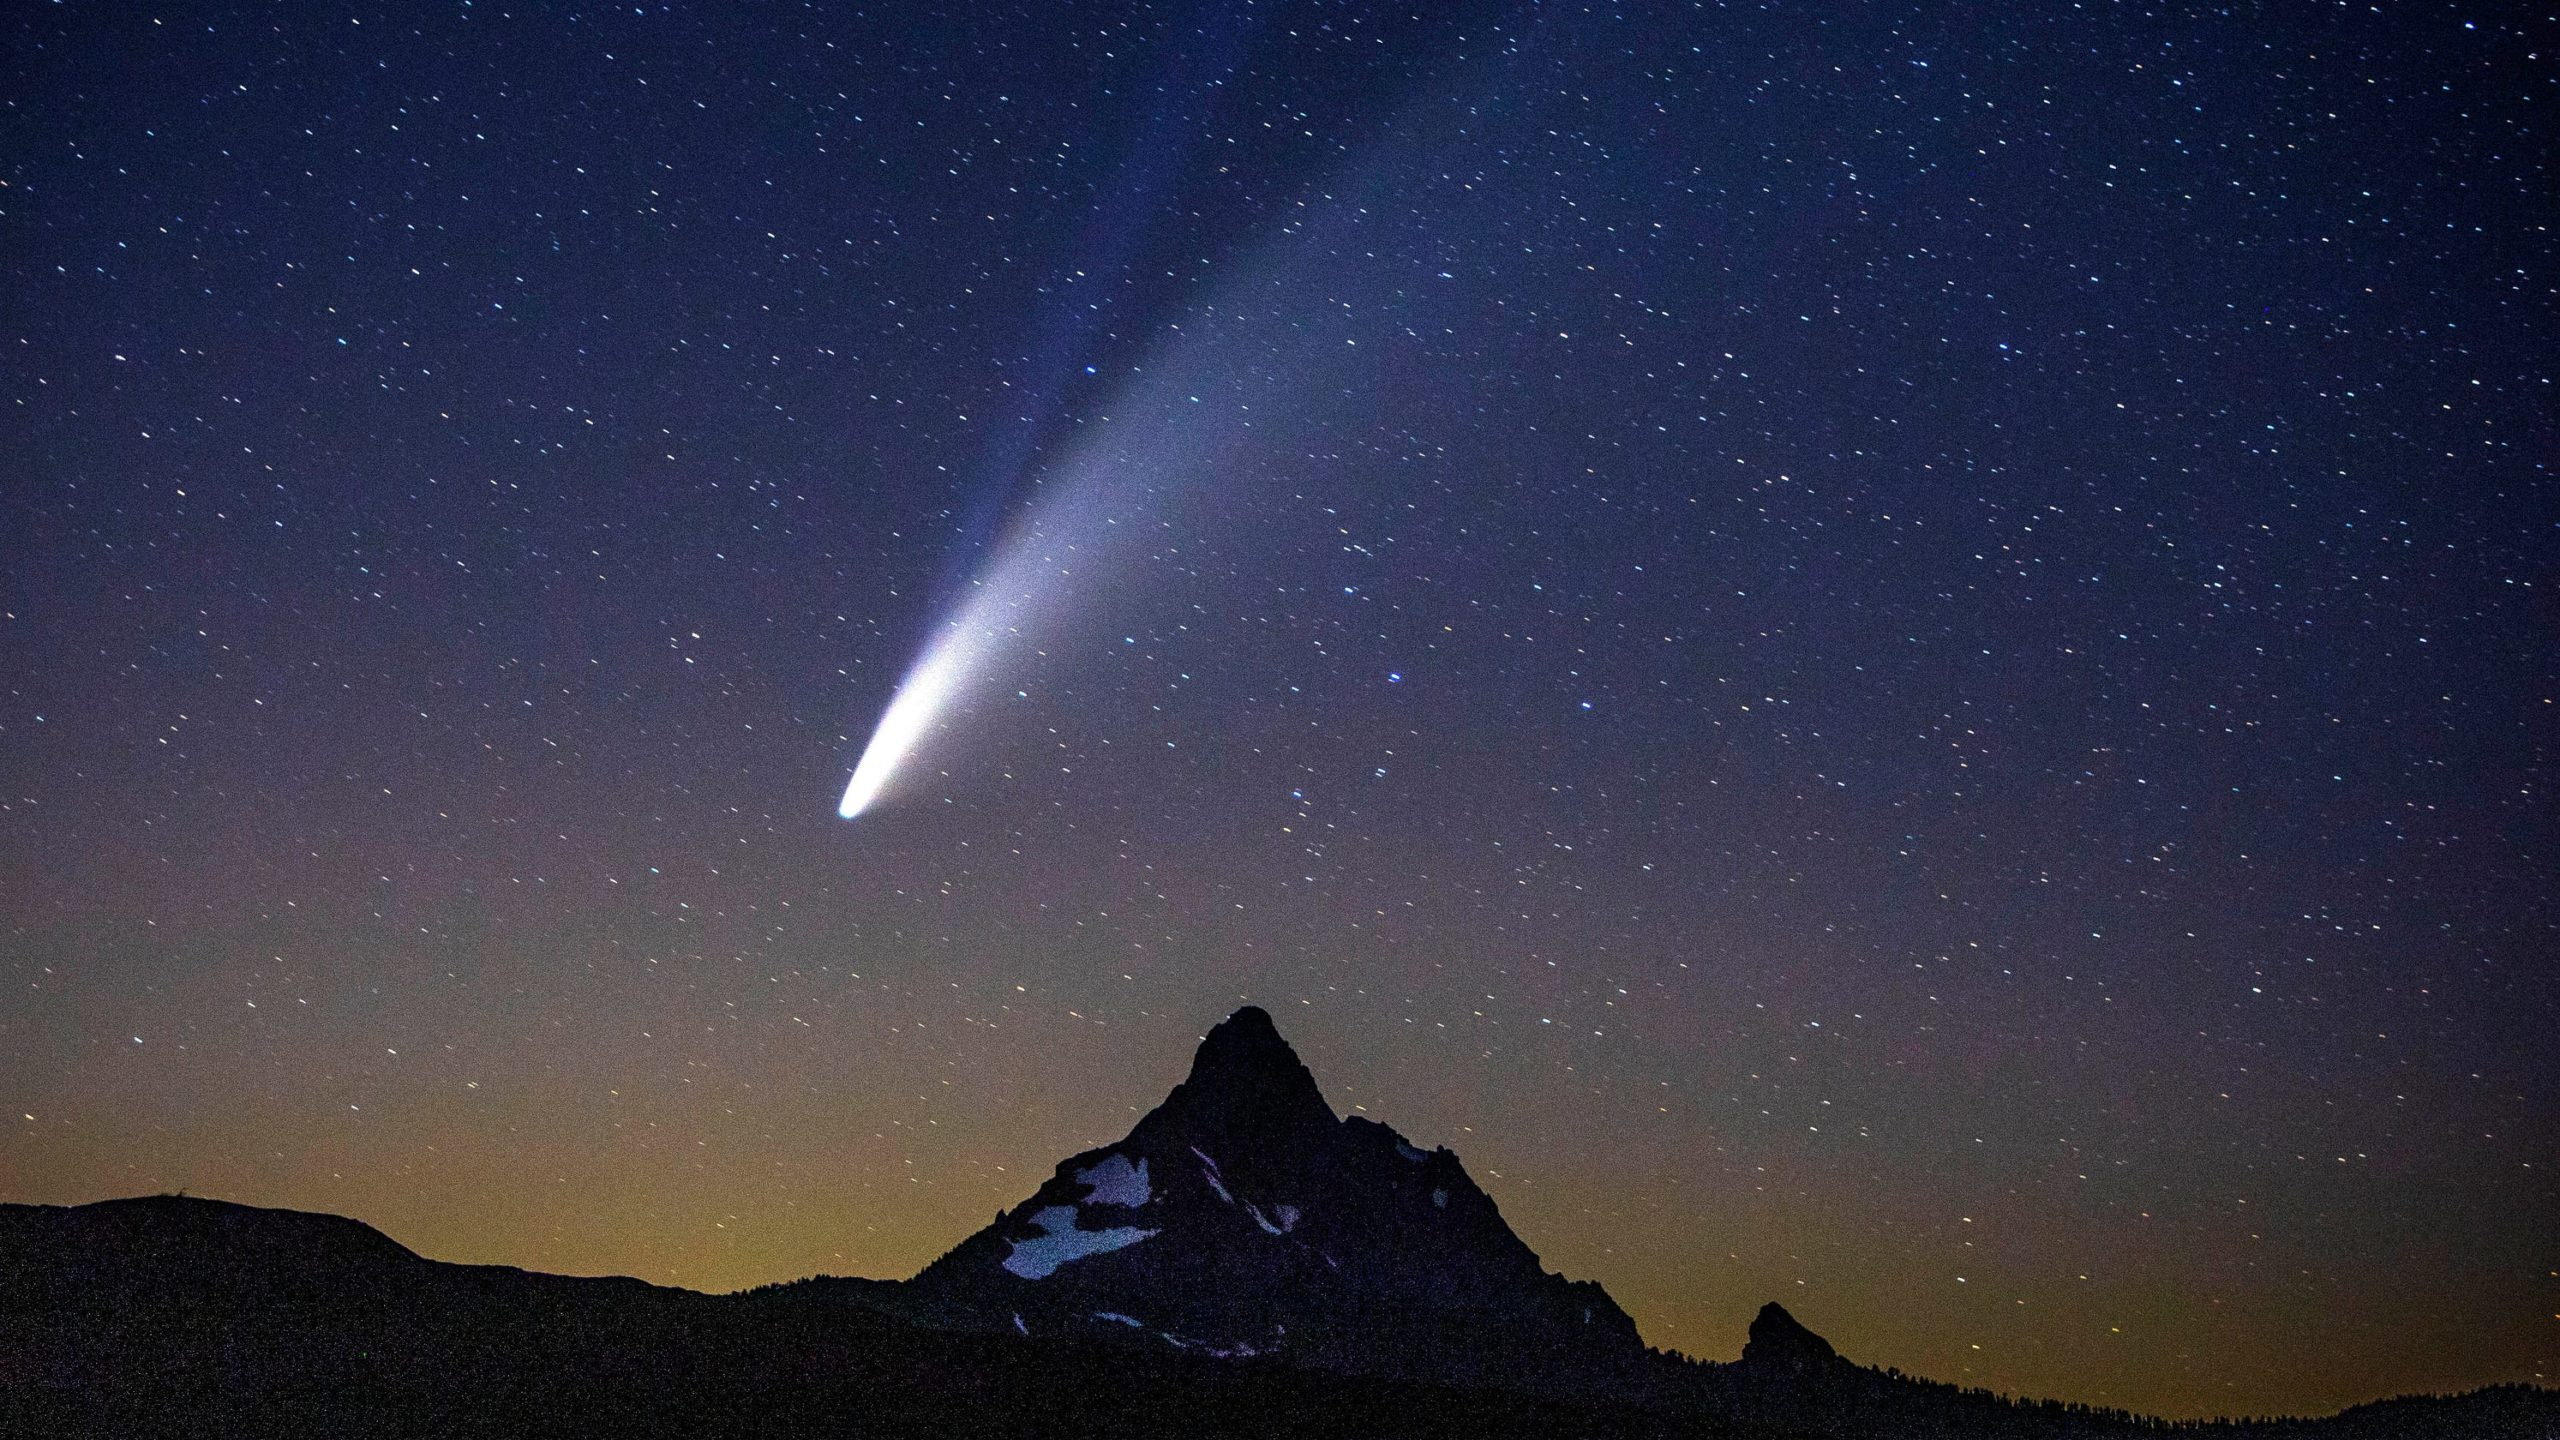 Mountain landscape, night sky, comet Neowise passing